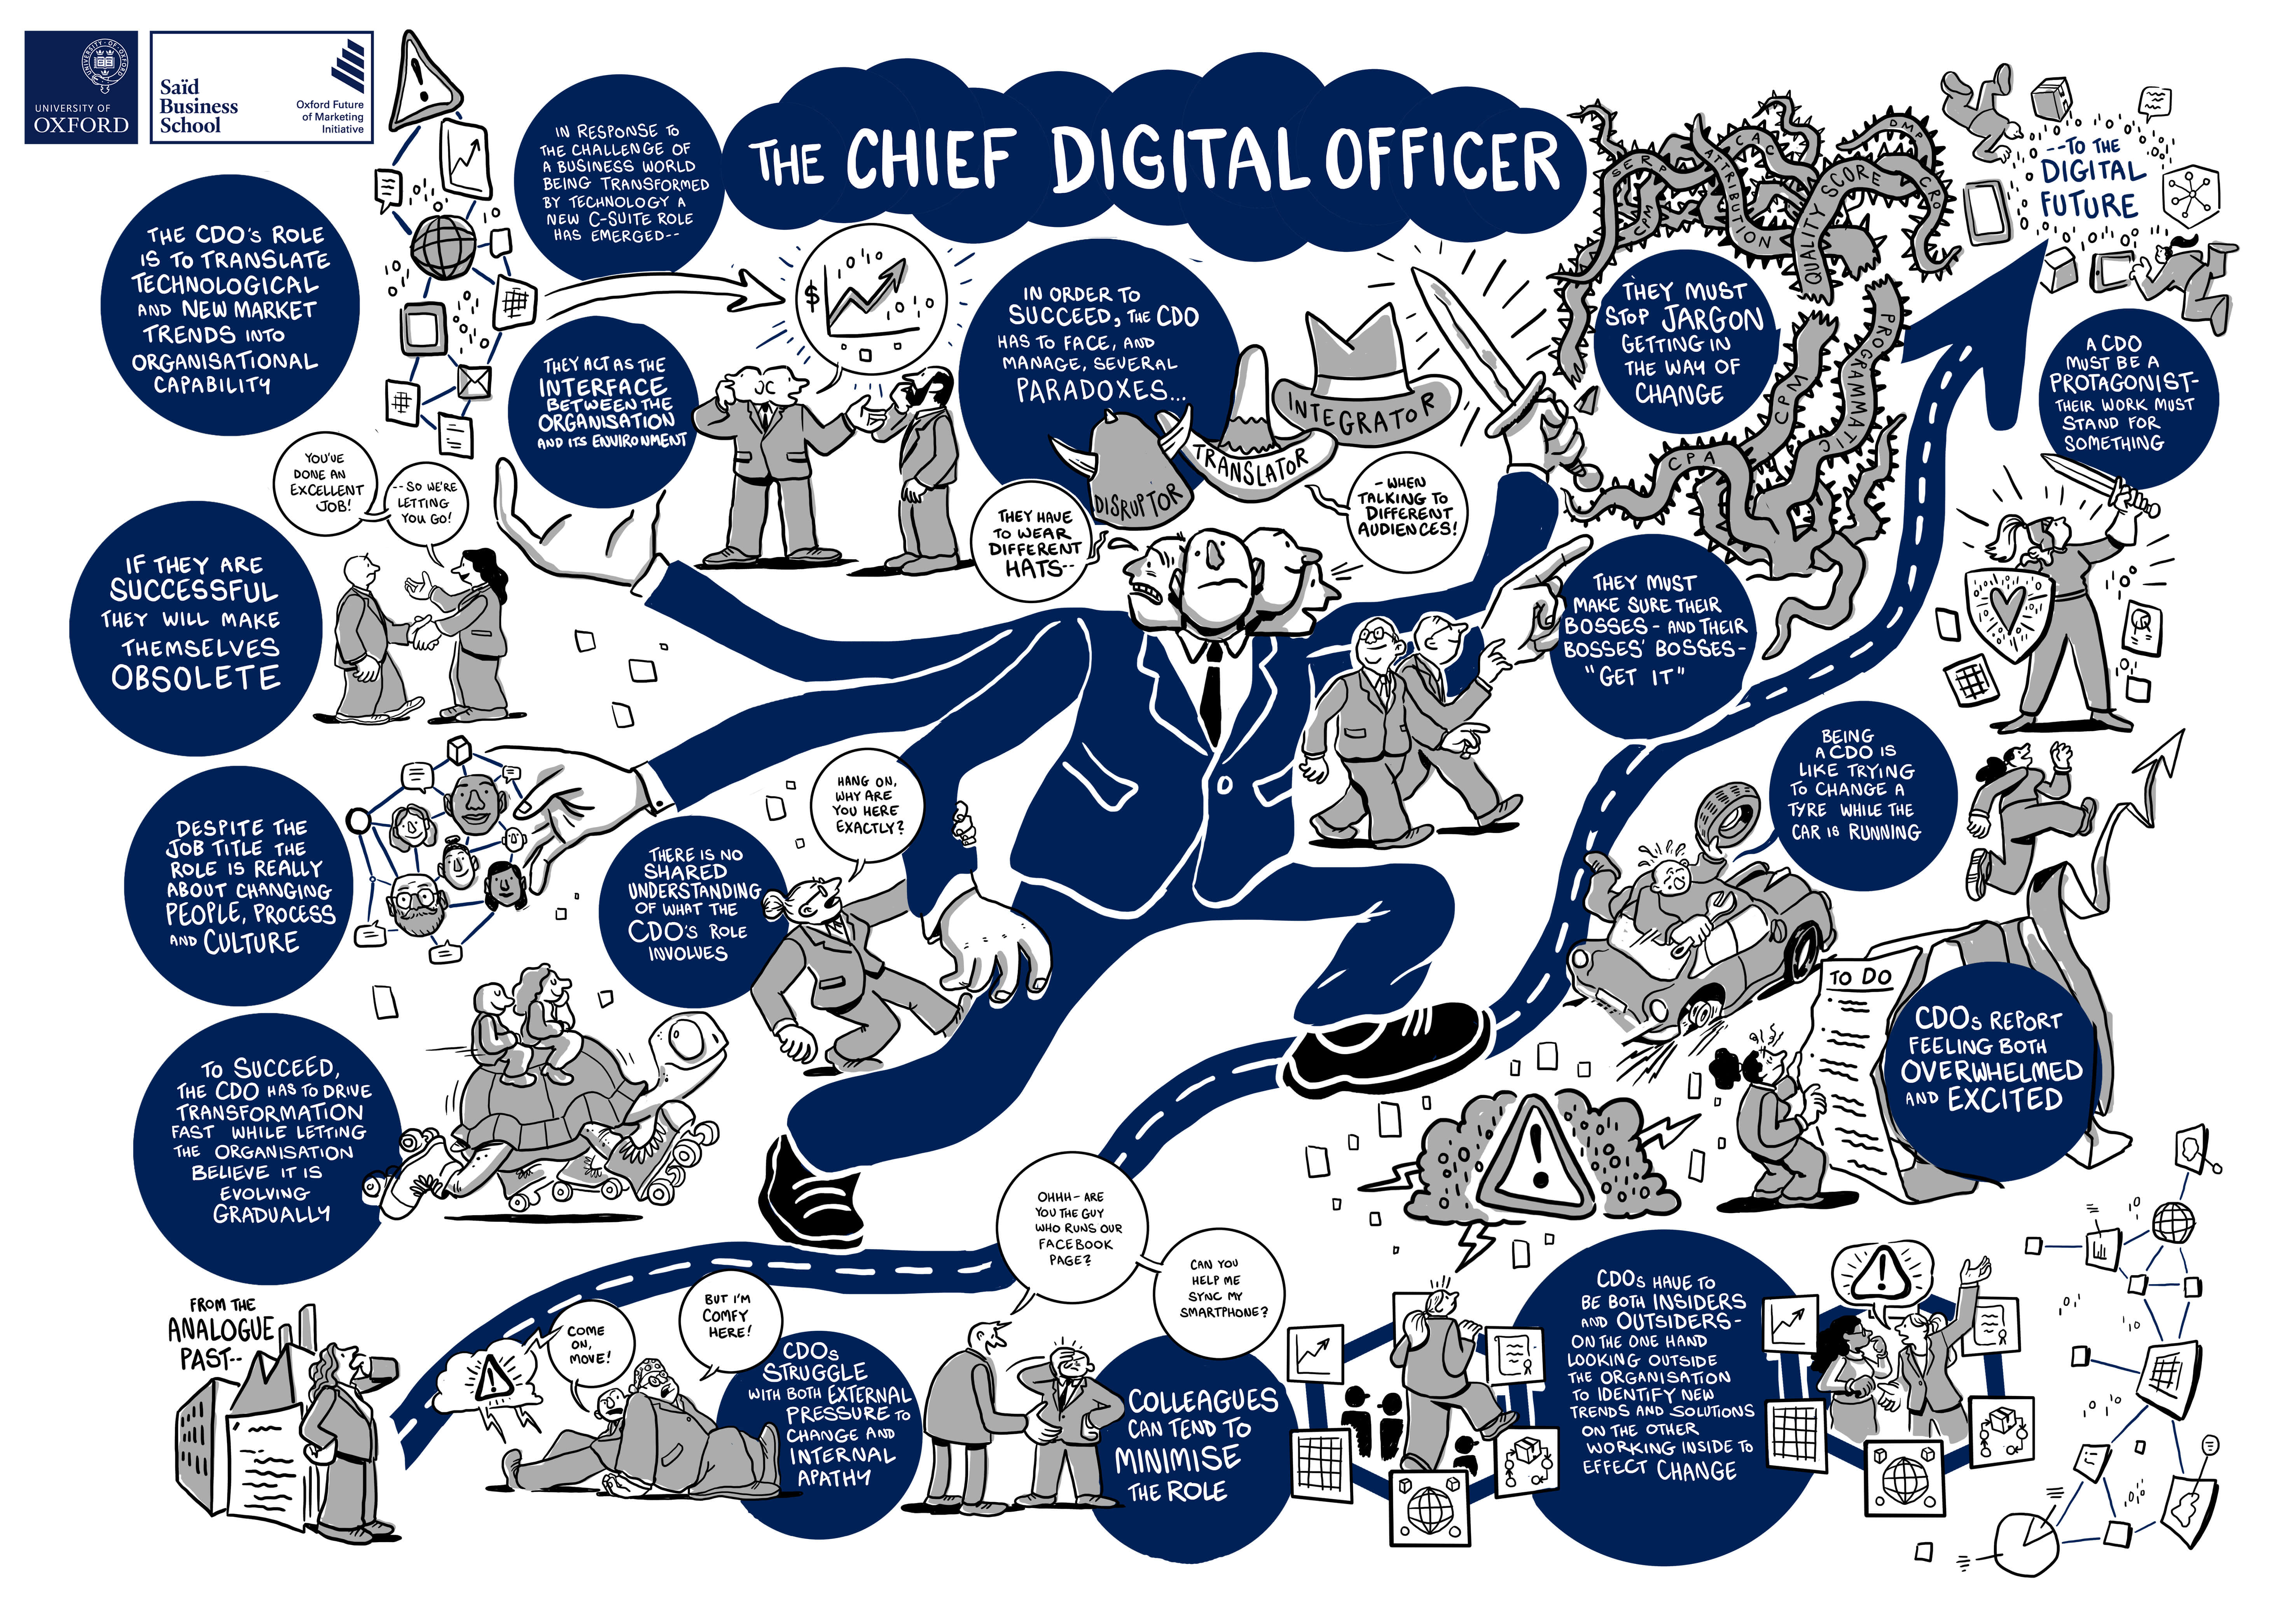 Chief Digital Officer infographic